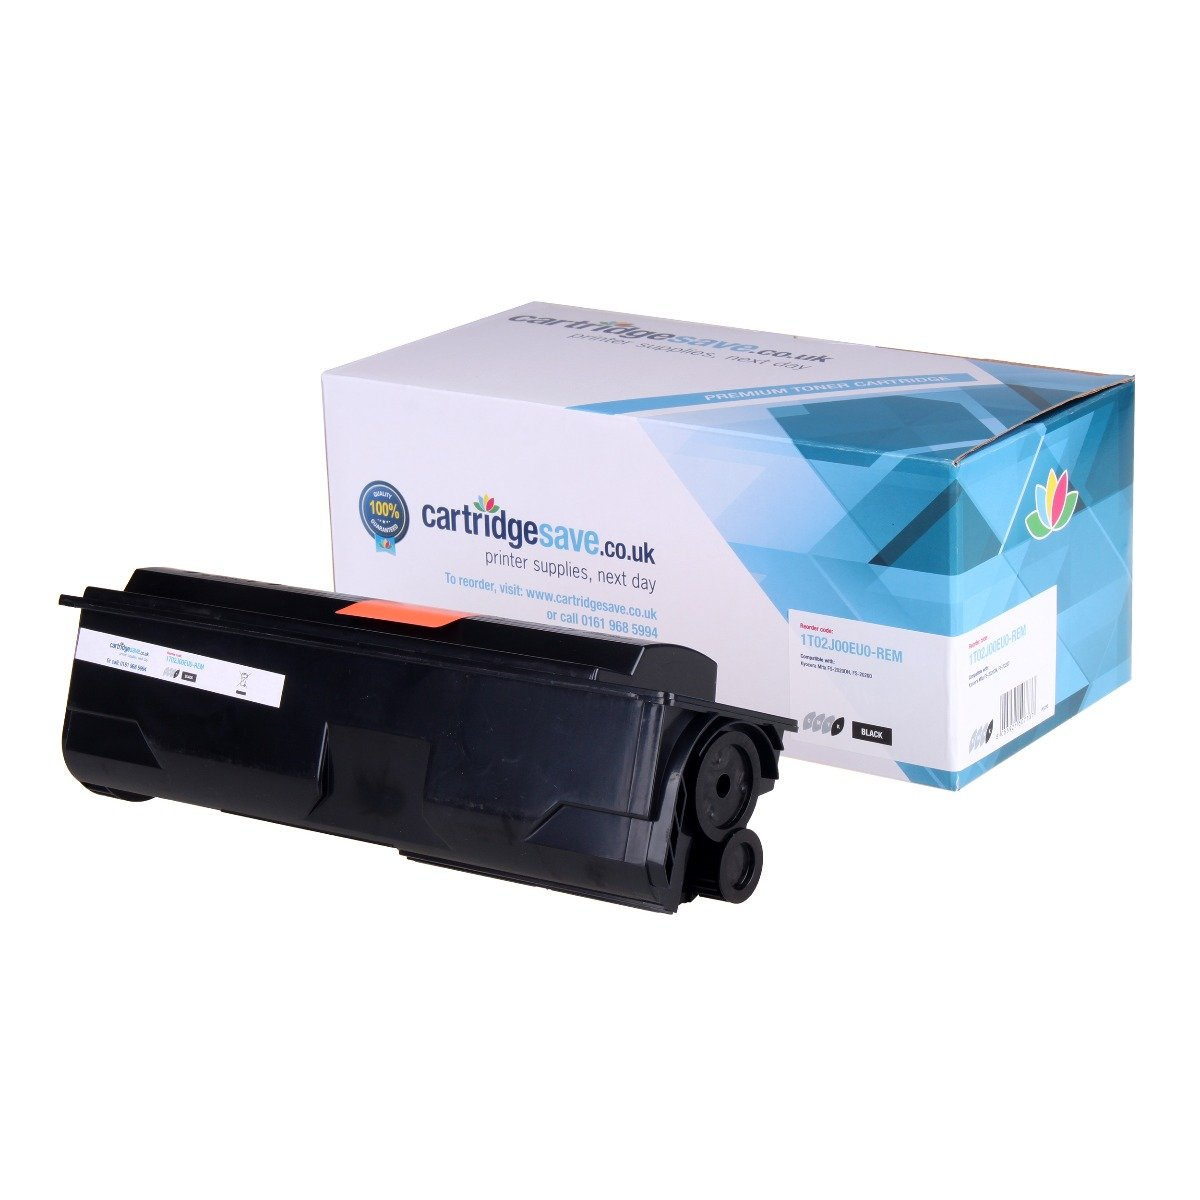 Compatible Black Kyocera TK-340 Toner Cartridge (Replaces Kyocera 1T02J00EU0 Laser Printer Cartridge)